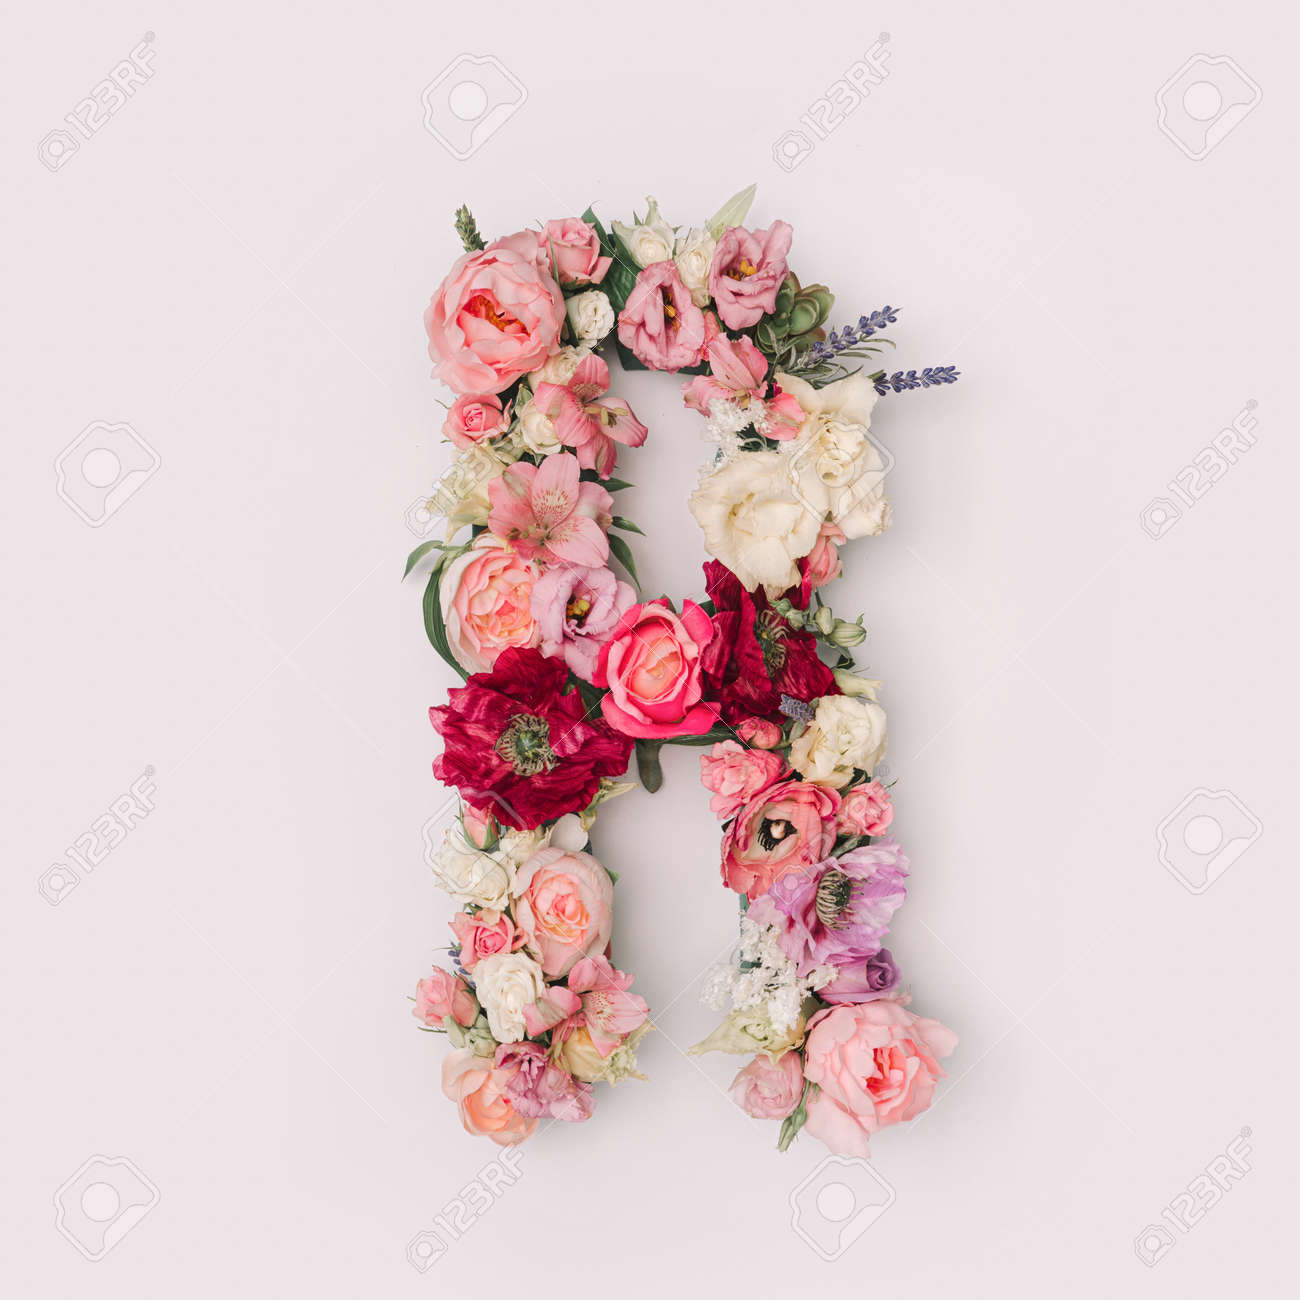 Letter R made of real natural flowers and leaves. Flower font concept. Unique collection of letters and numbers. Spring, summer and valentines creative idea. - 163345600